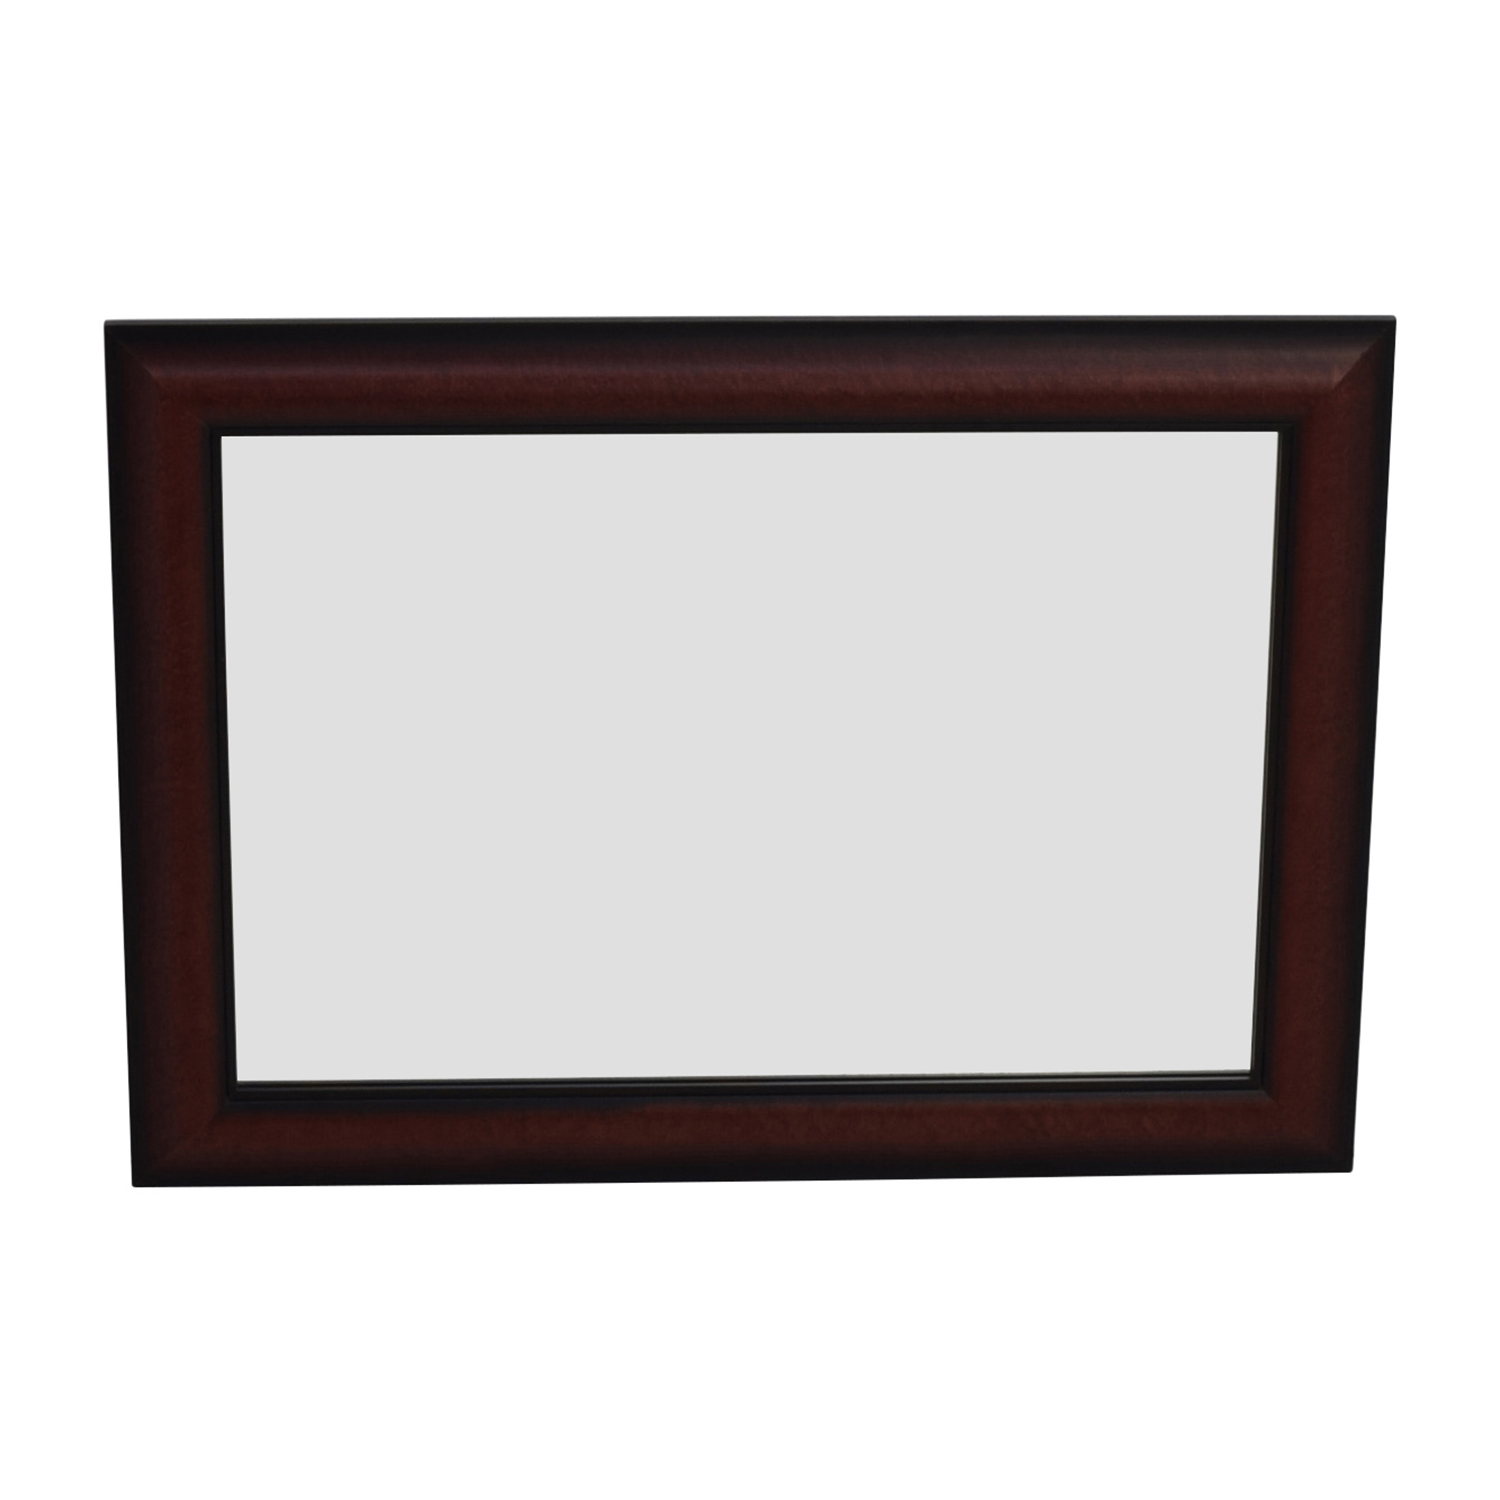 Cherry Wood Rectangular Wall Mirror Mirrors